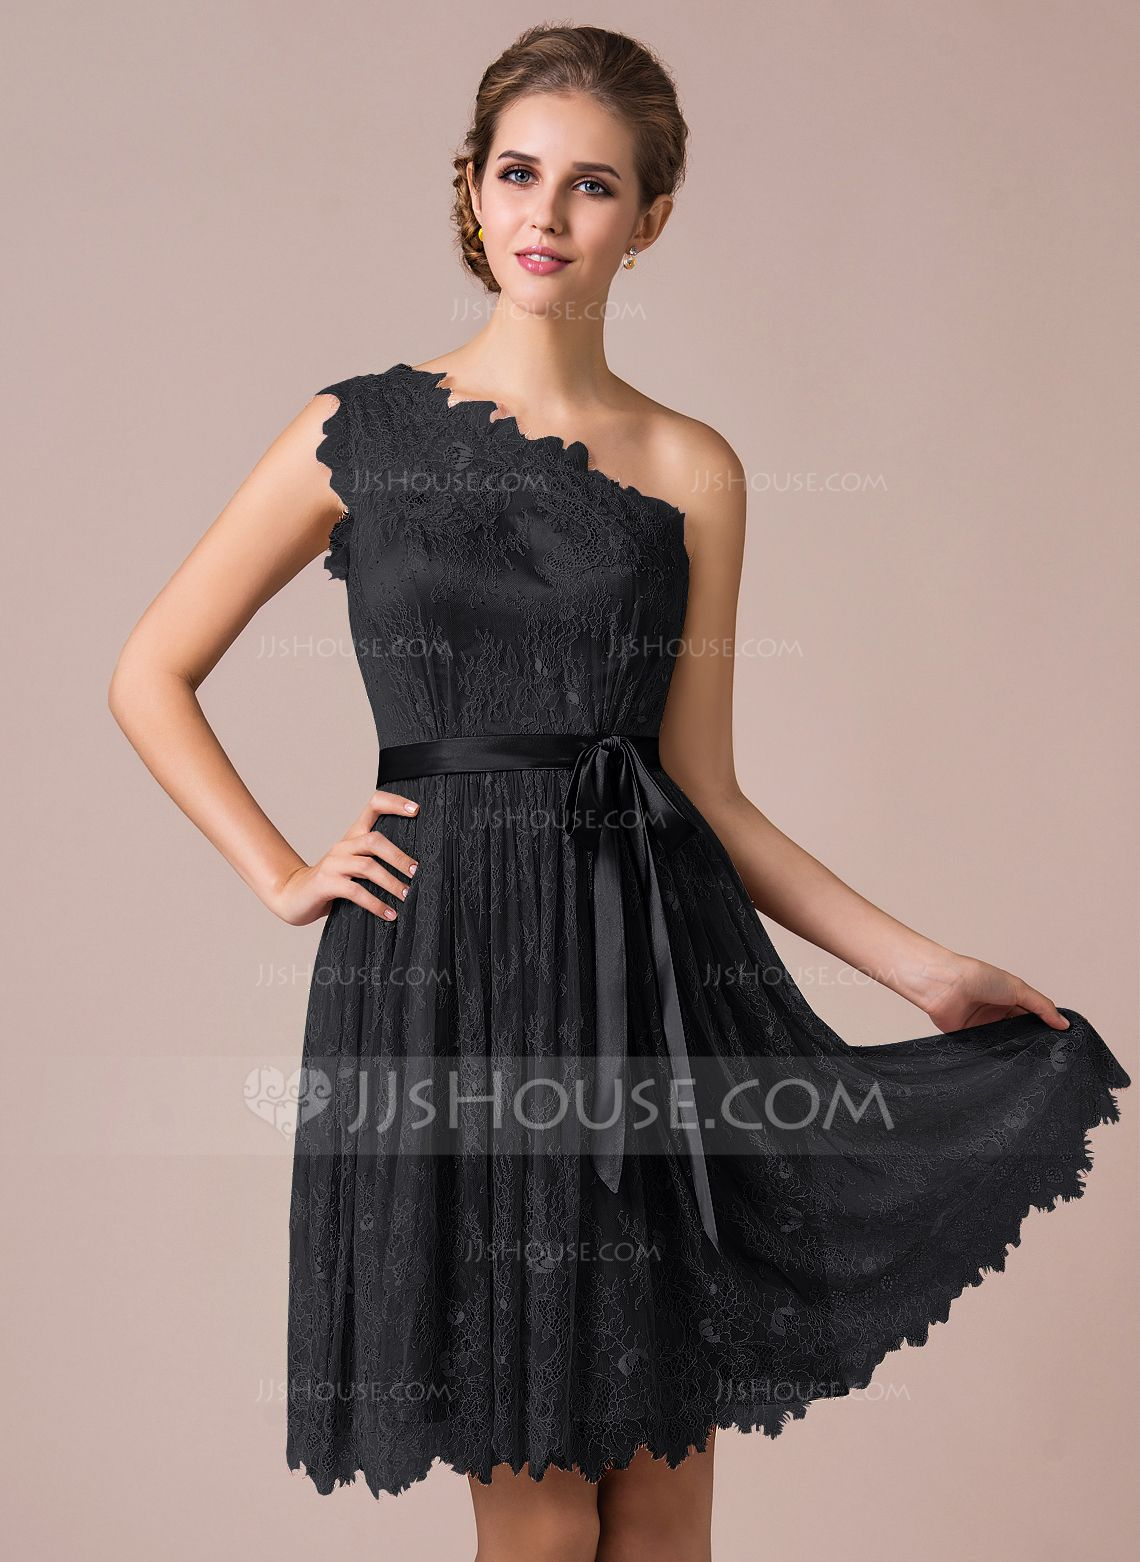 A-Line Princess One-Shoulder Knee-Length Charmeuse Lace Bridesmaid Dress  With Bow(s) (007056818) - JJsHouse bb3144aa8